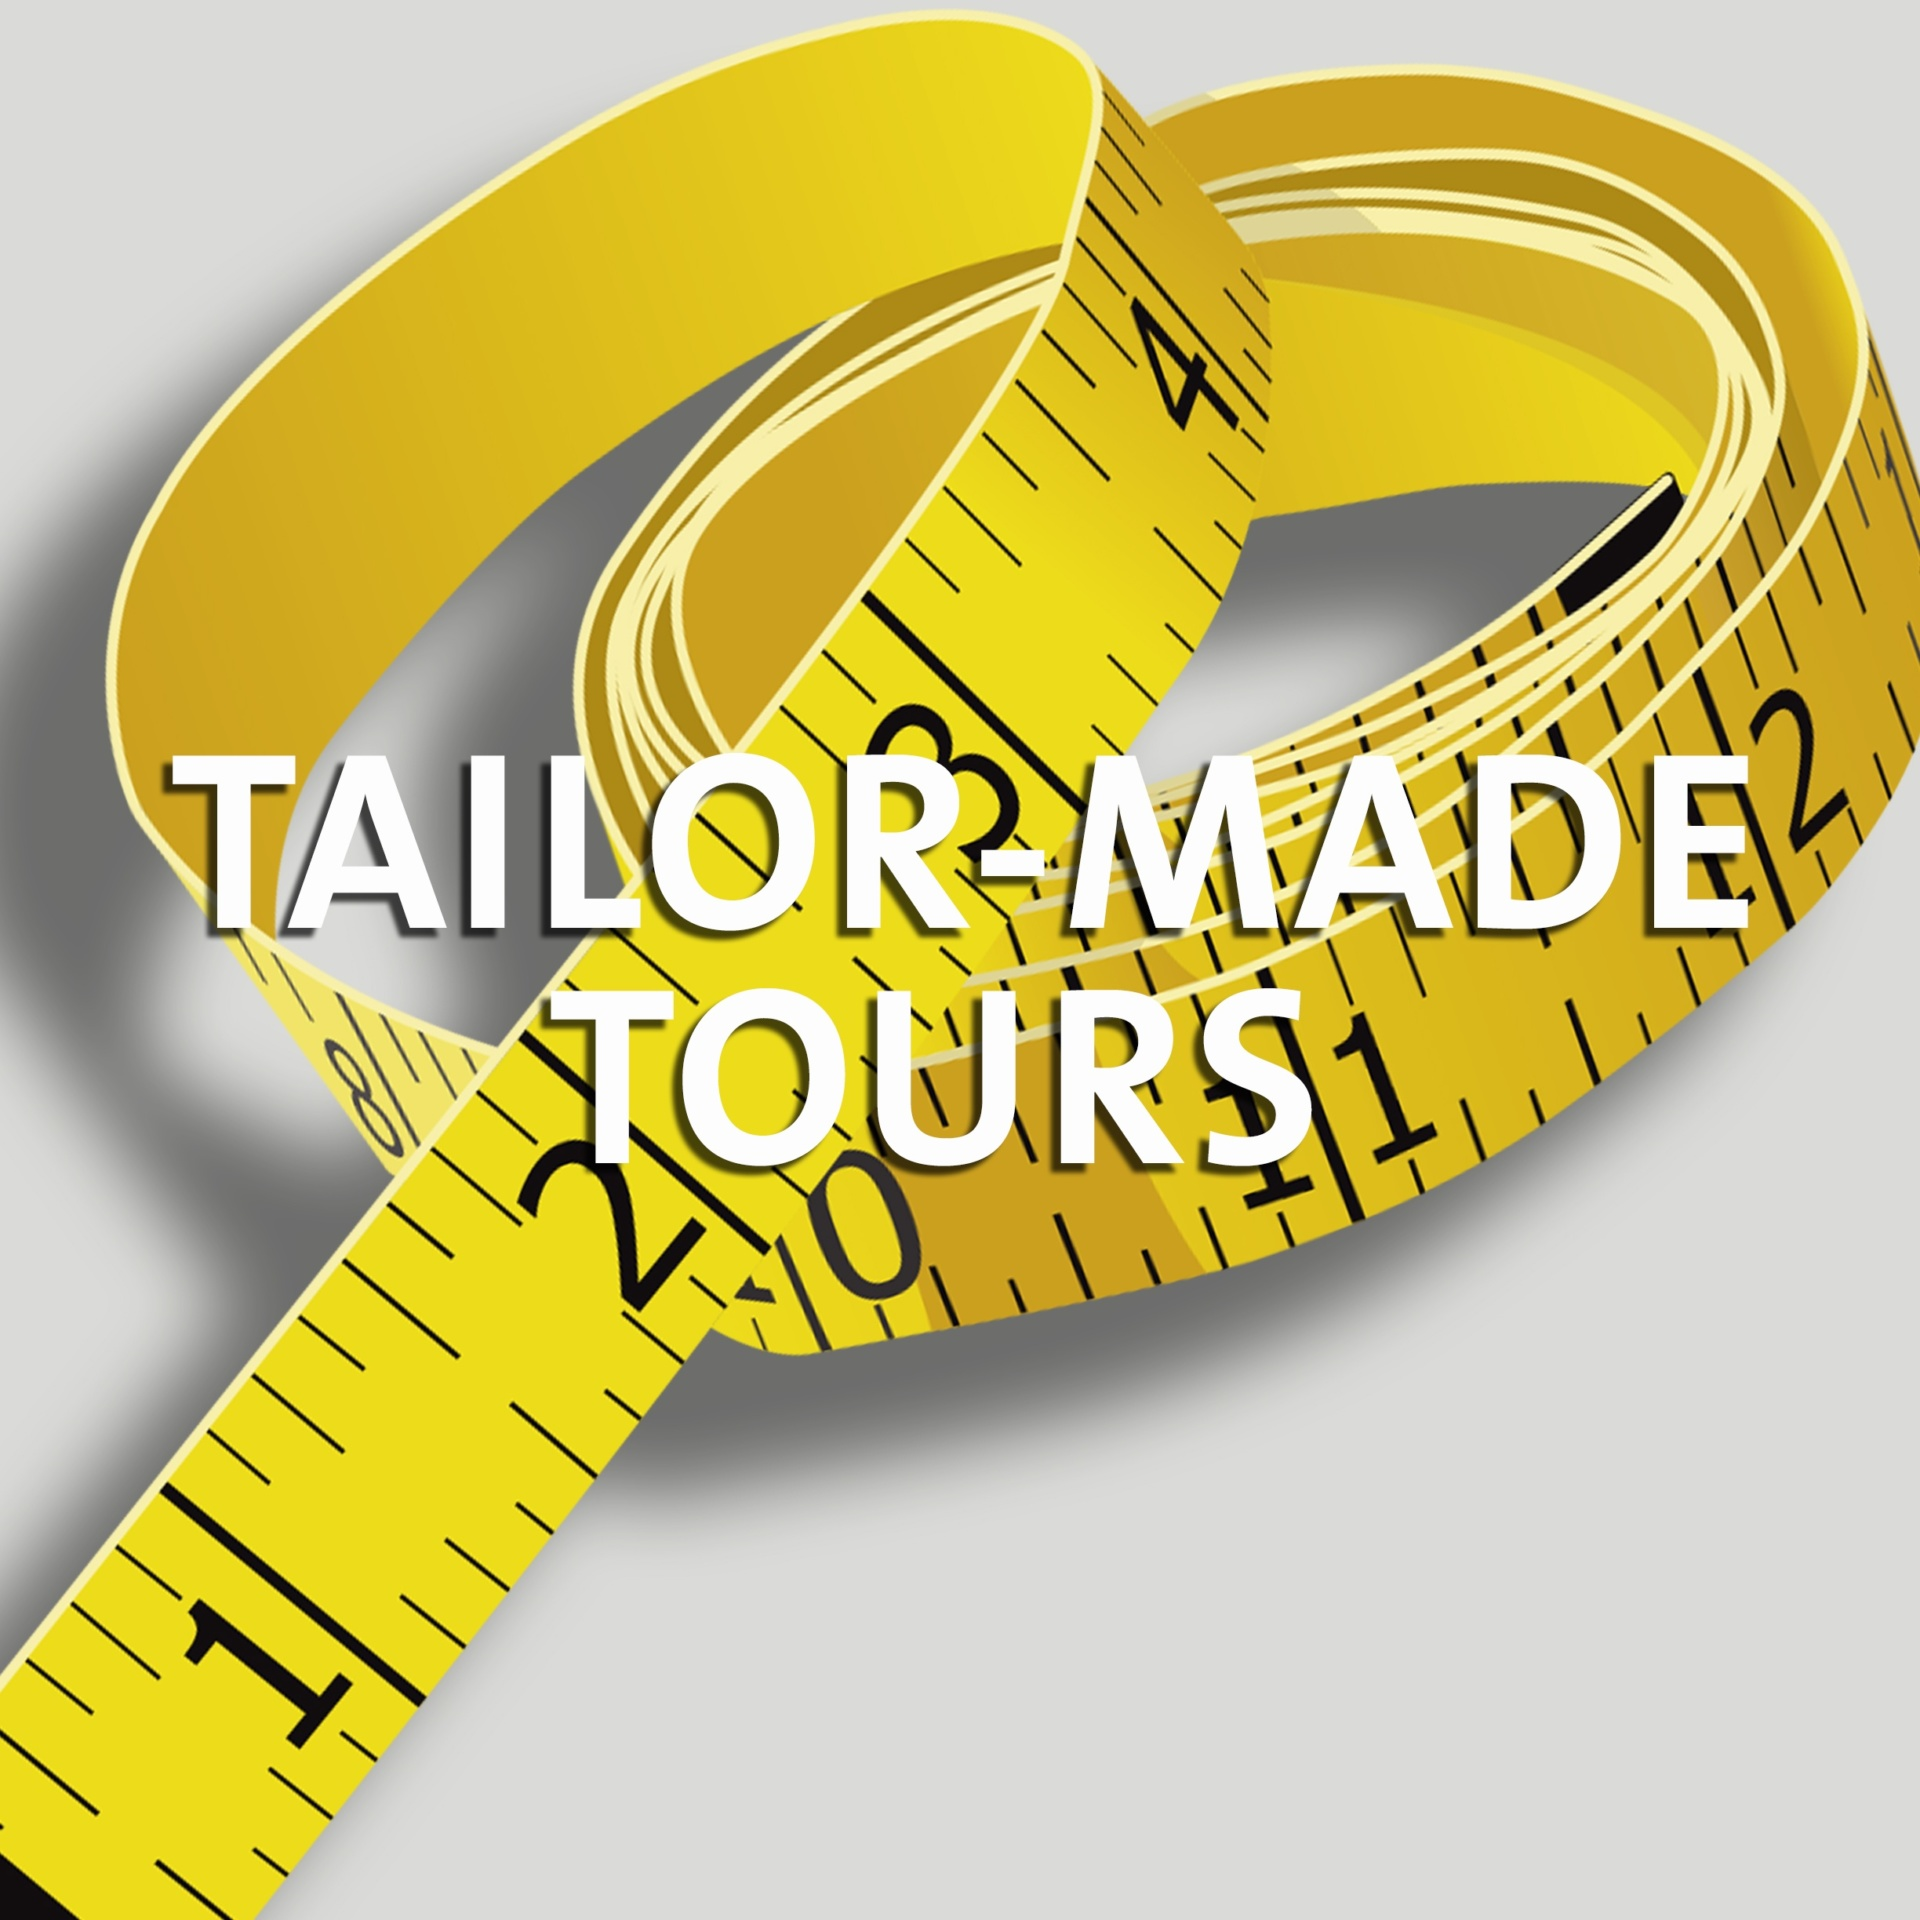 TAILORED-MADE TOURS